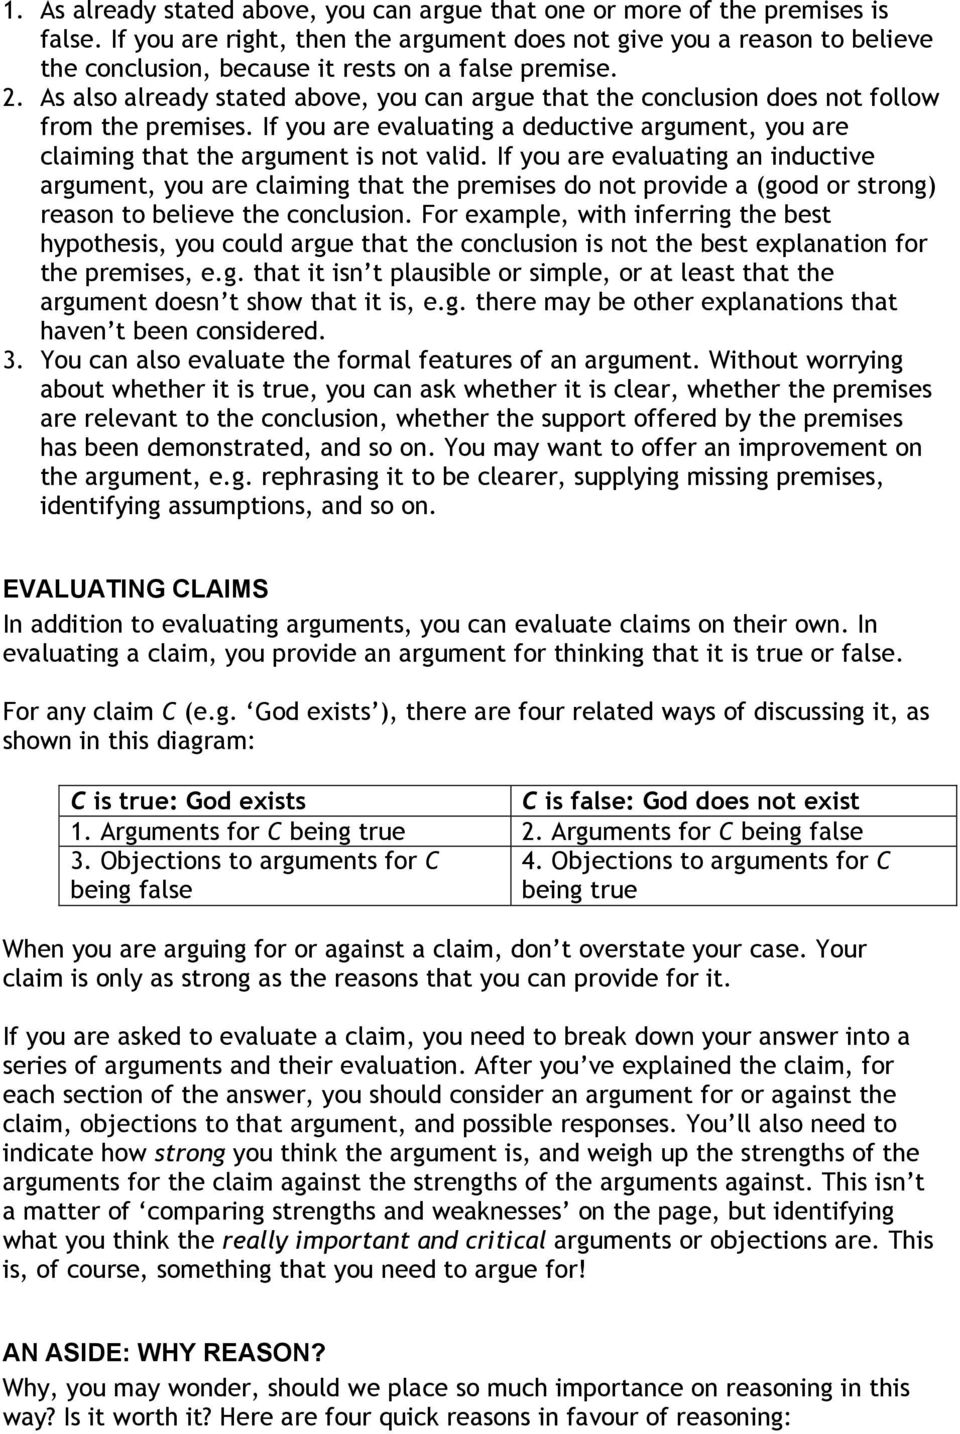 As also already stated above, you can argue that the conclusion does not follow from the premises. If you are evaluating a deductive argument, you are claiming that the argument is not valid.